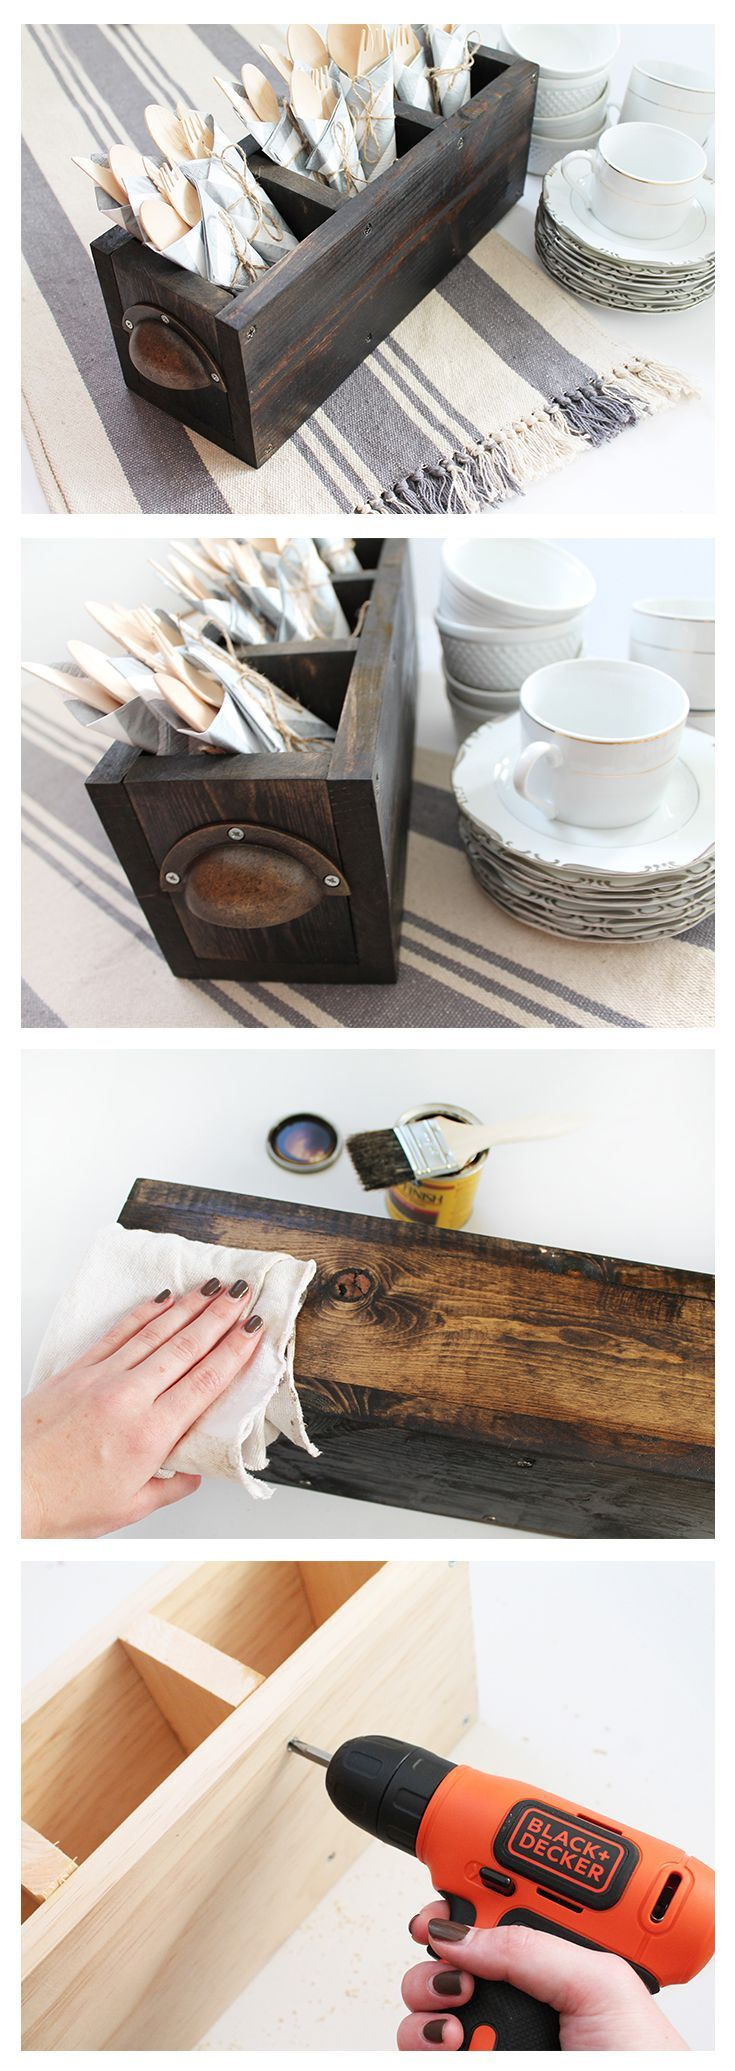 ** Silverware caddy for hosting the holidays - here's how to build it...